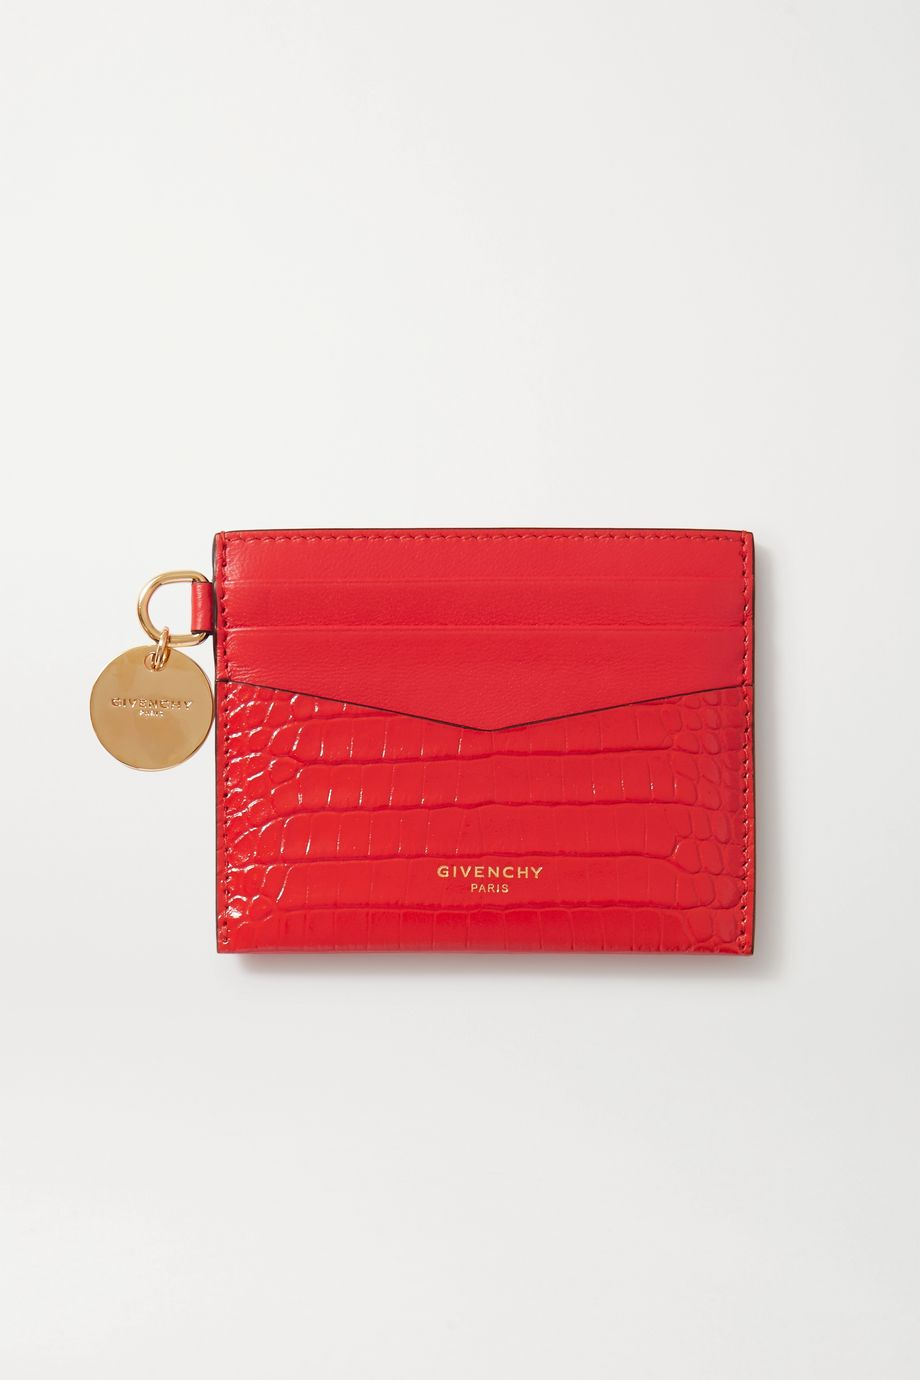 Givenchy GV3 croc-effect leather cardholder